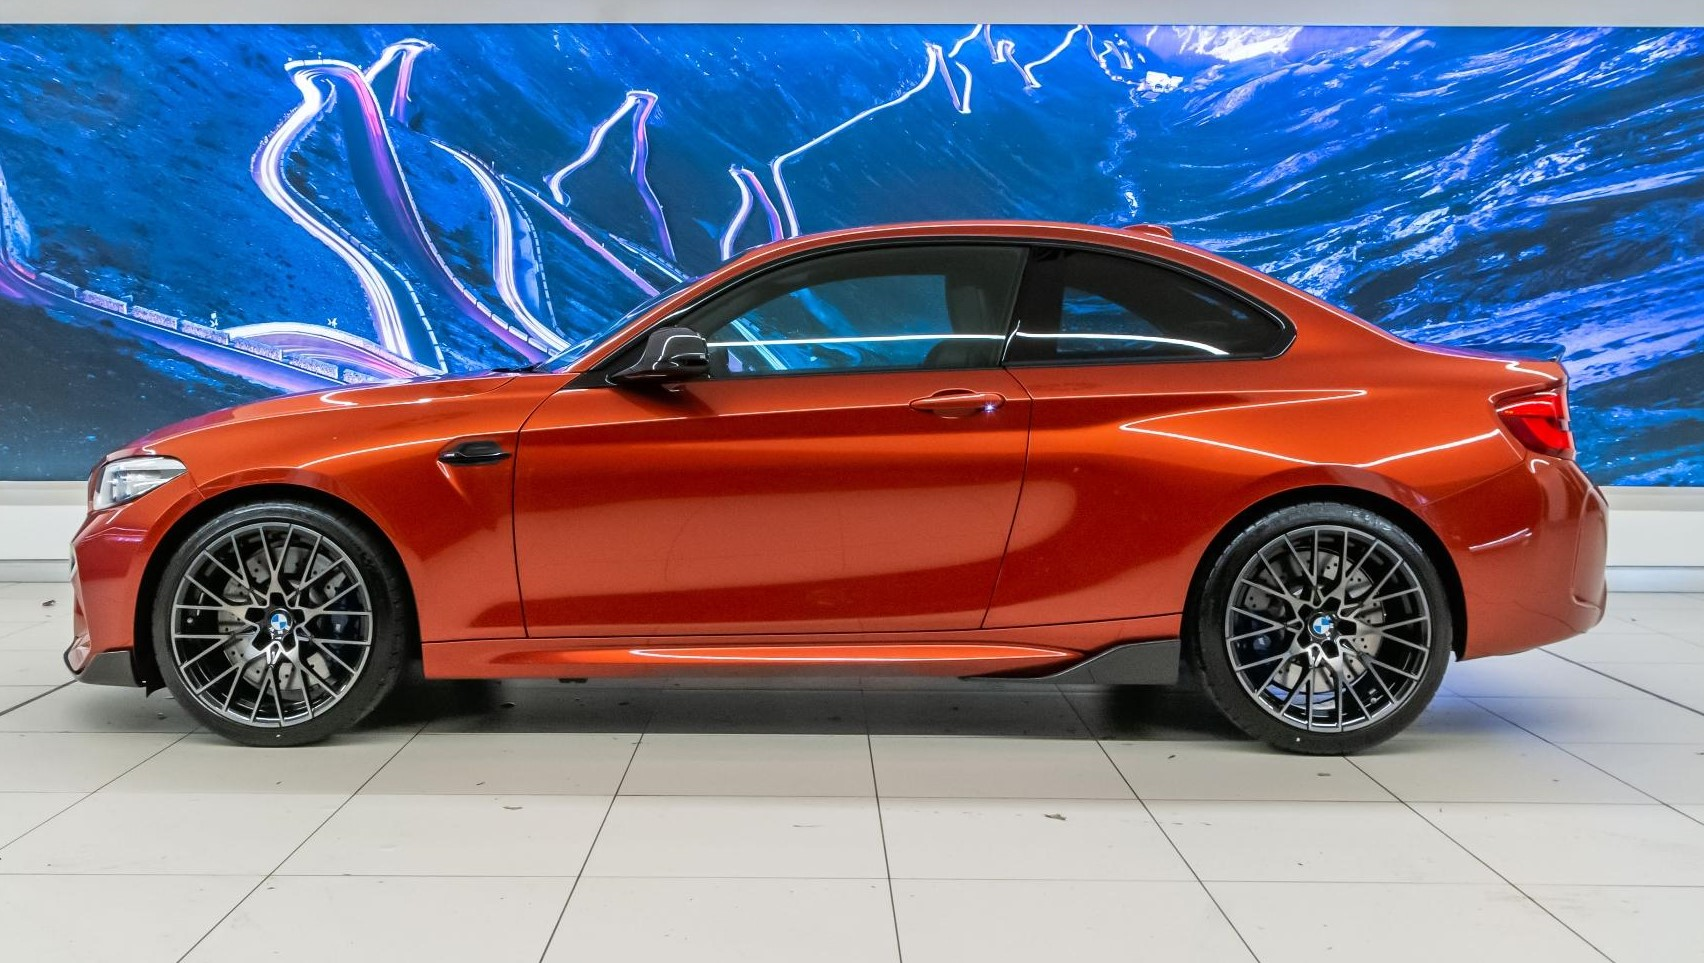 RHD-UK-MY2019 BMW-M2 Sunset-Orange Prestige-Vehicle-Search Ltd